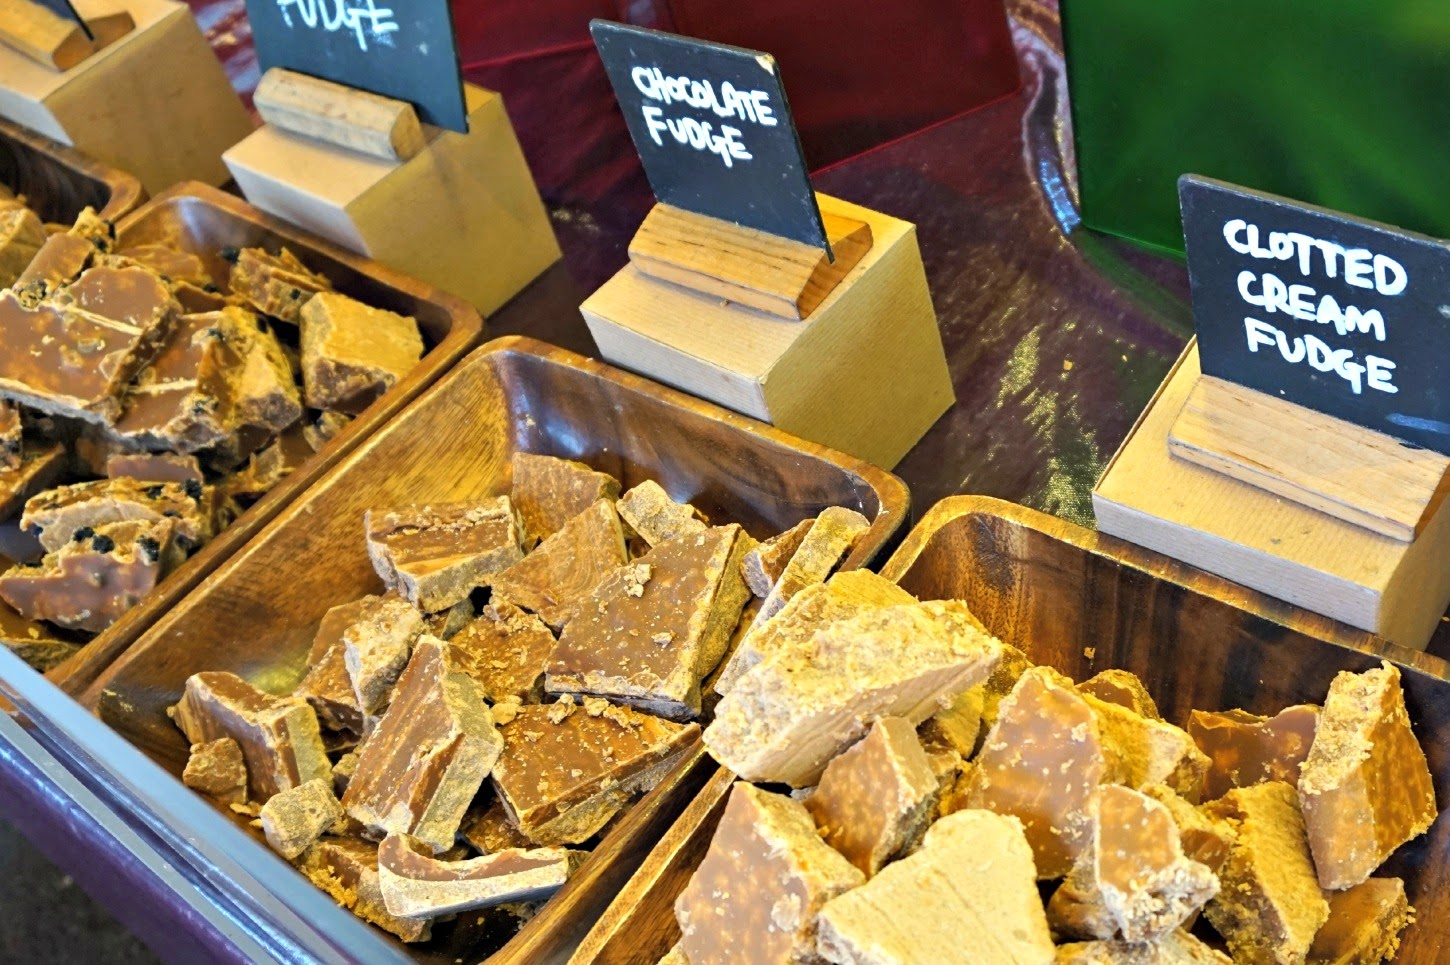 Borough Market Fudge